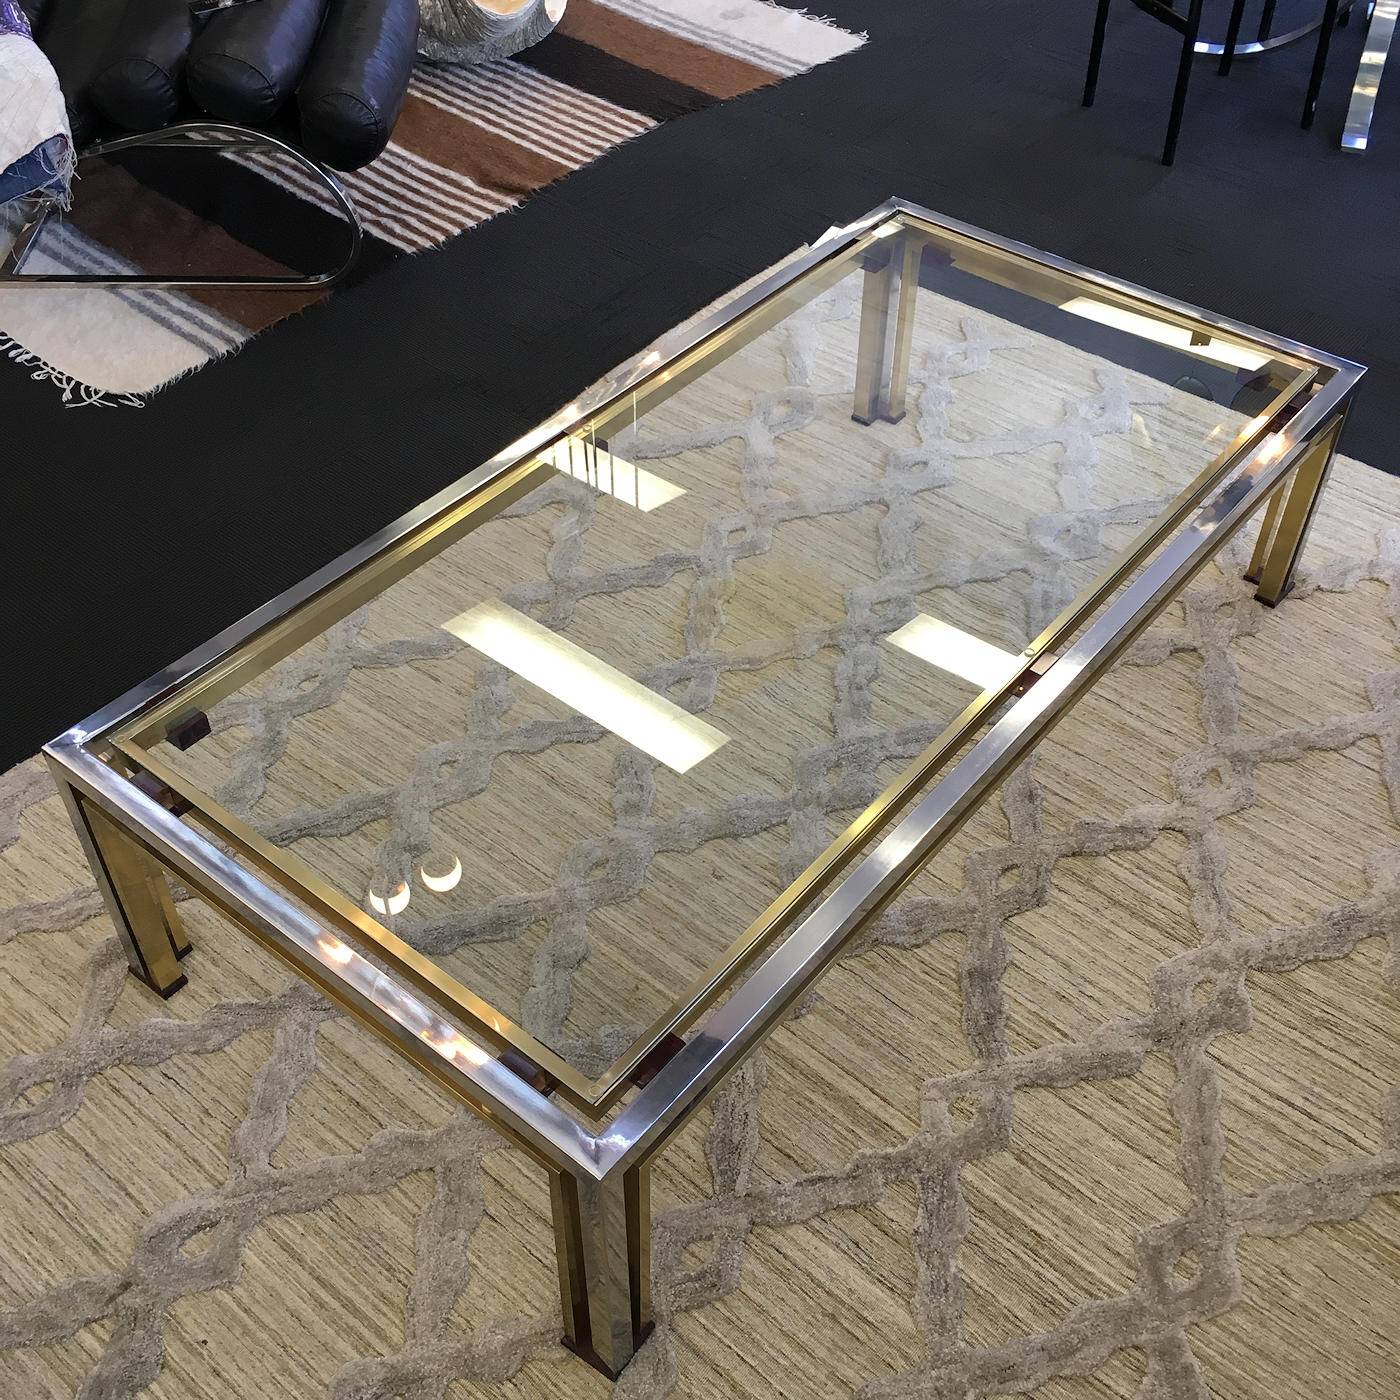 Prime Vintage Italian Coffee Table Signed By Romeo Rega Interior Design Ideas Clesiryabchikinfo